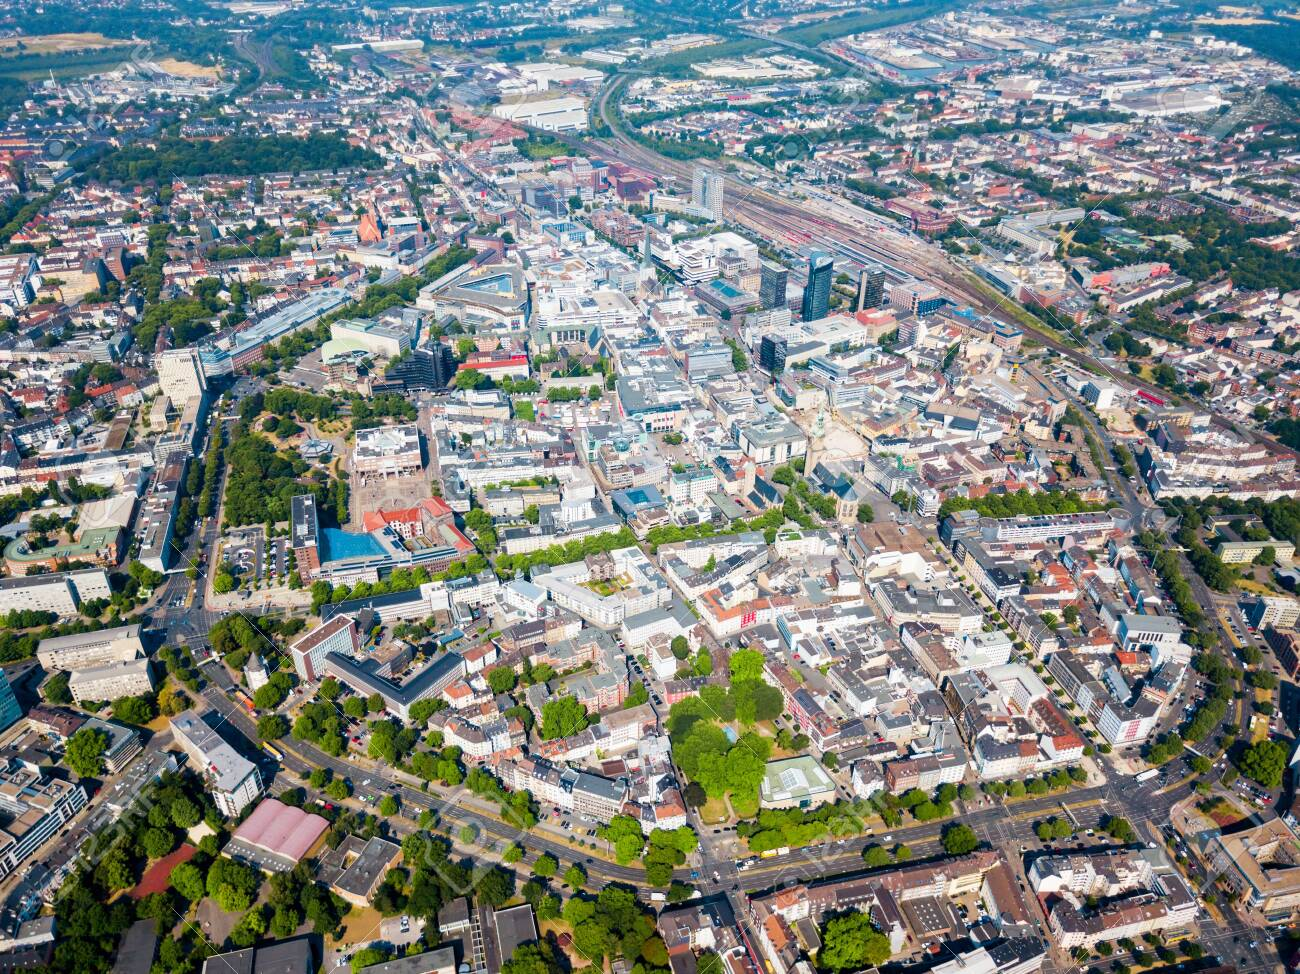 Dortmund City Centre Aerial Panoramic View In Germany Stock Photo, Picture  And Royalty Free Image. Image 122423794.